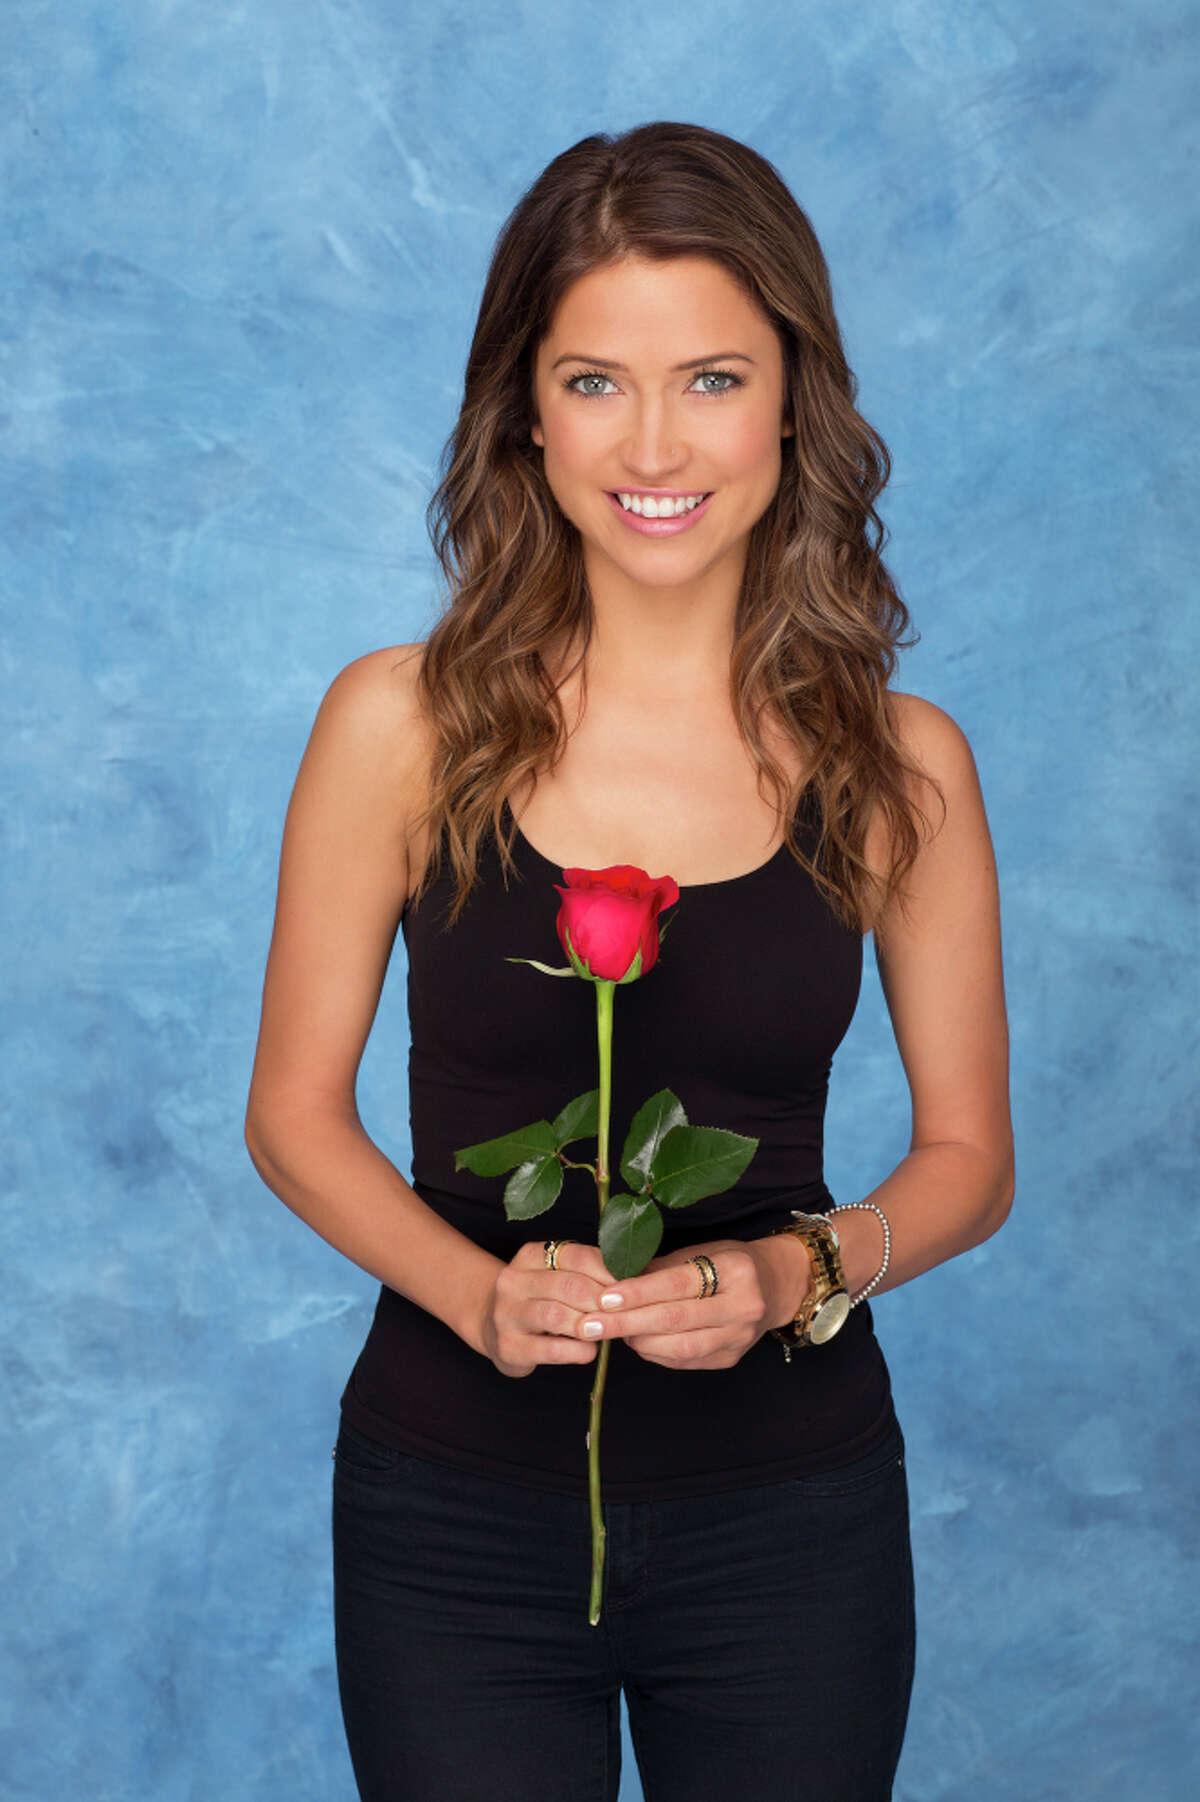 Kaitlyn Bristowe is one of two bachelorettes on ABC's